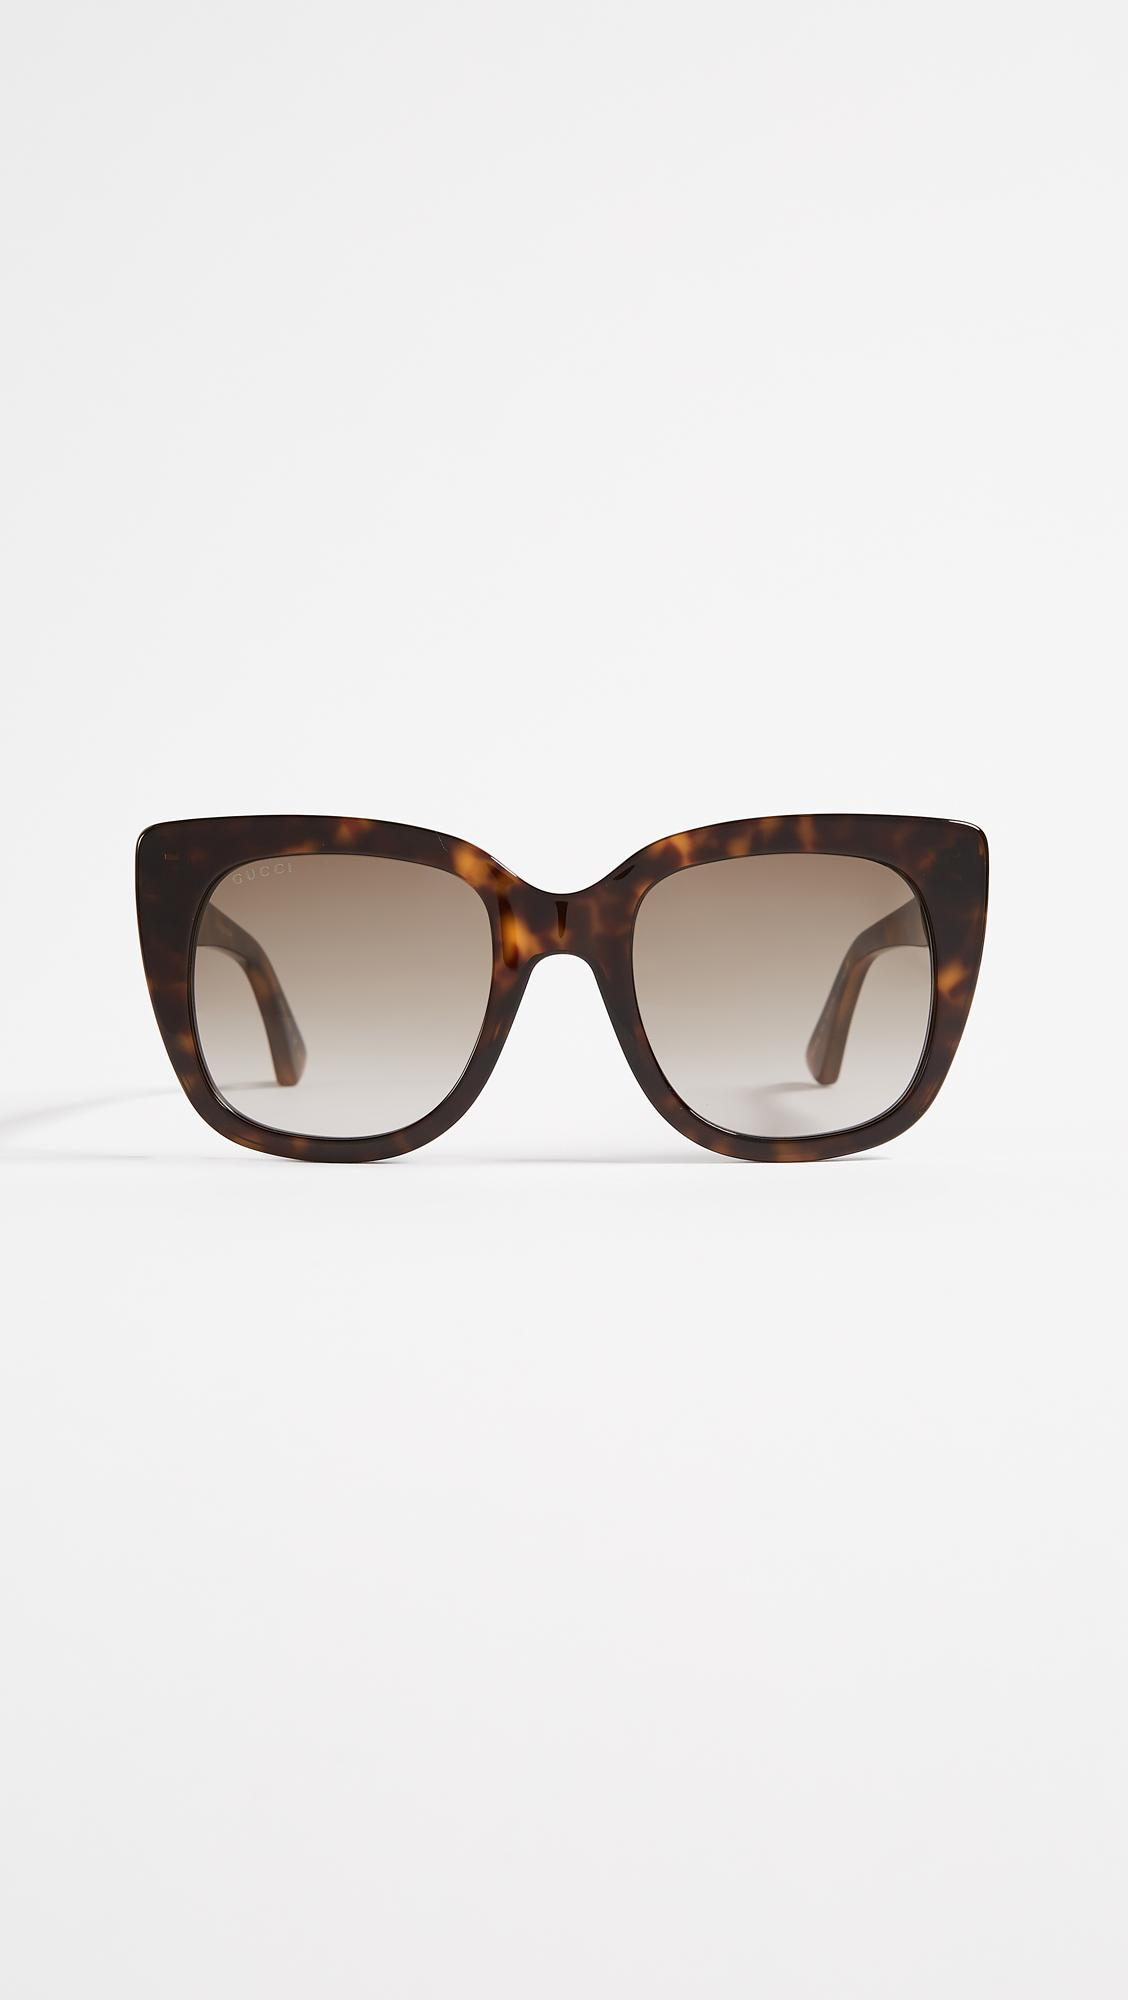 0c0c4c0965194 Lyst - Gucci Square Sunglasses in Brown - Save 5%